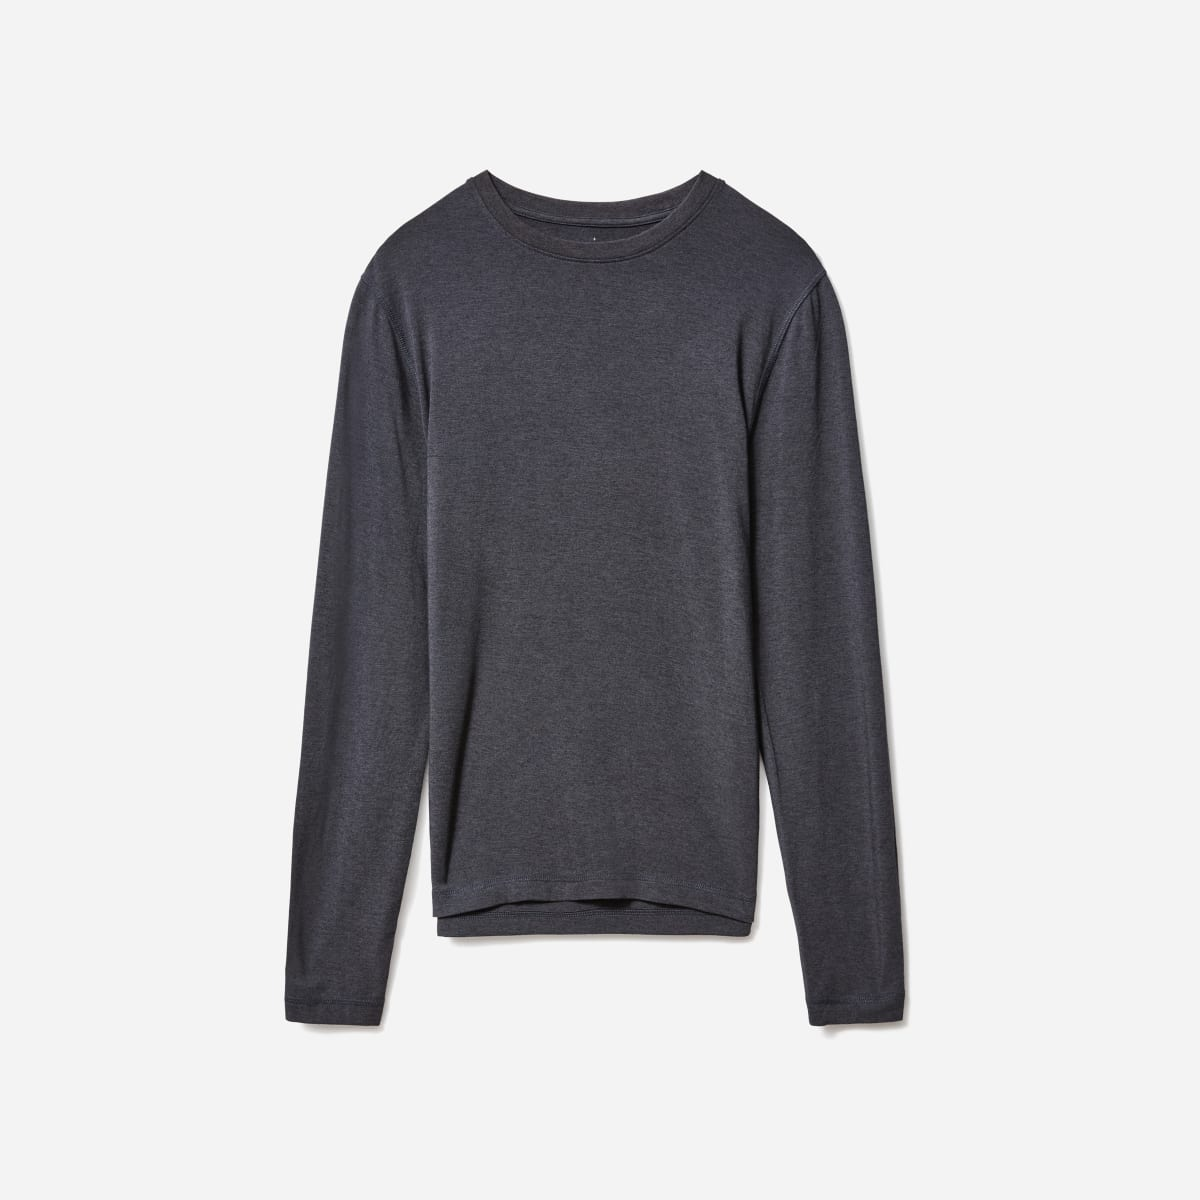 Everlane The ThermoStat Base Layer Shirt in charcoal